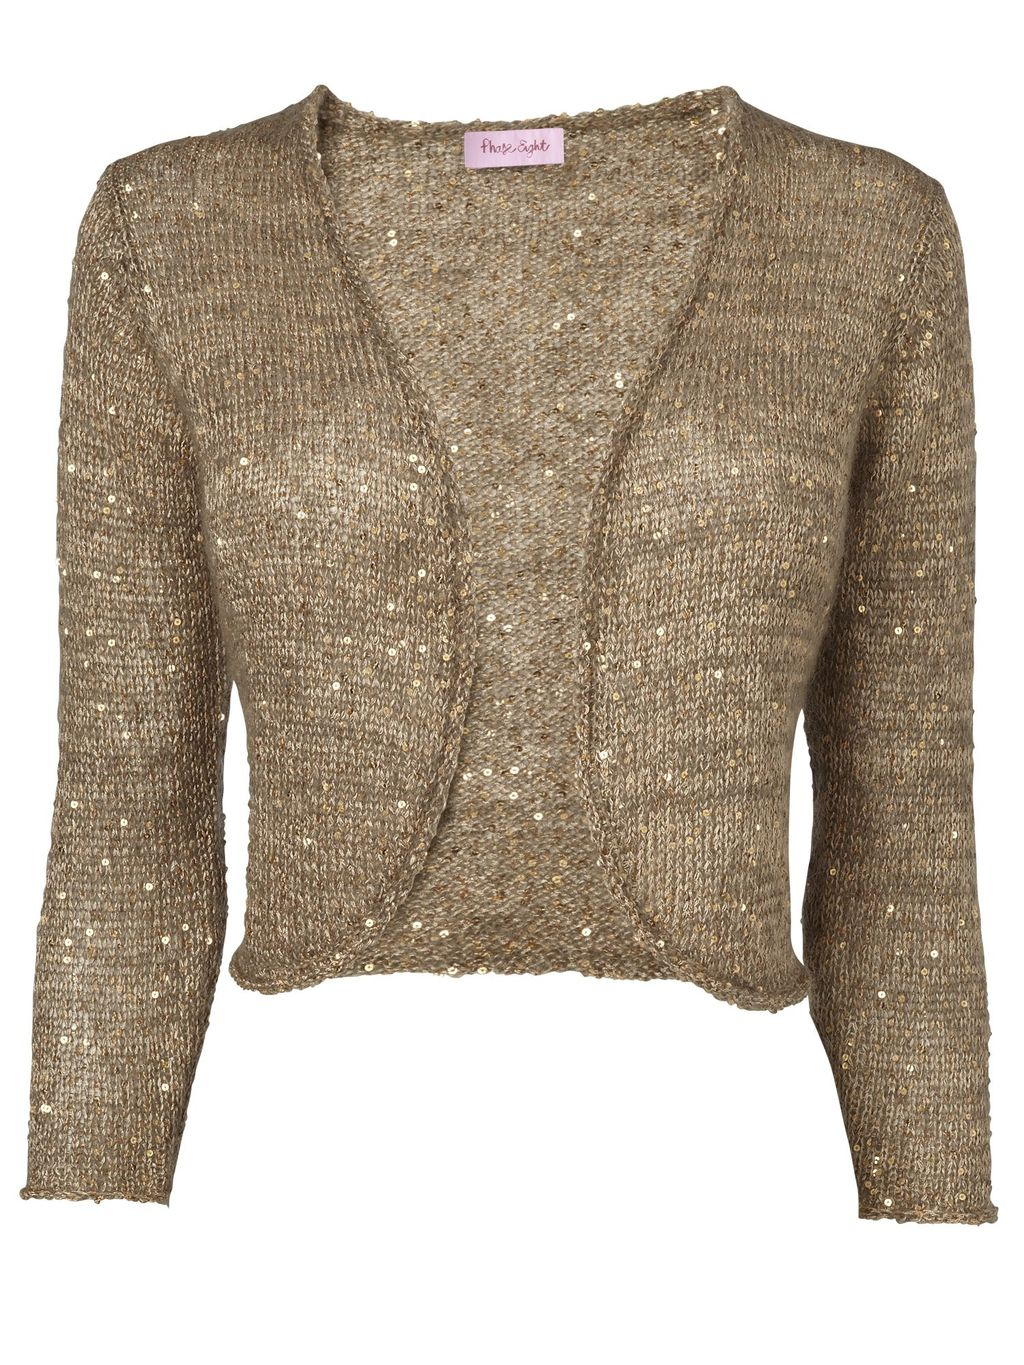 Gold Shrug Sweater Her Sweater